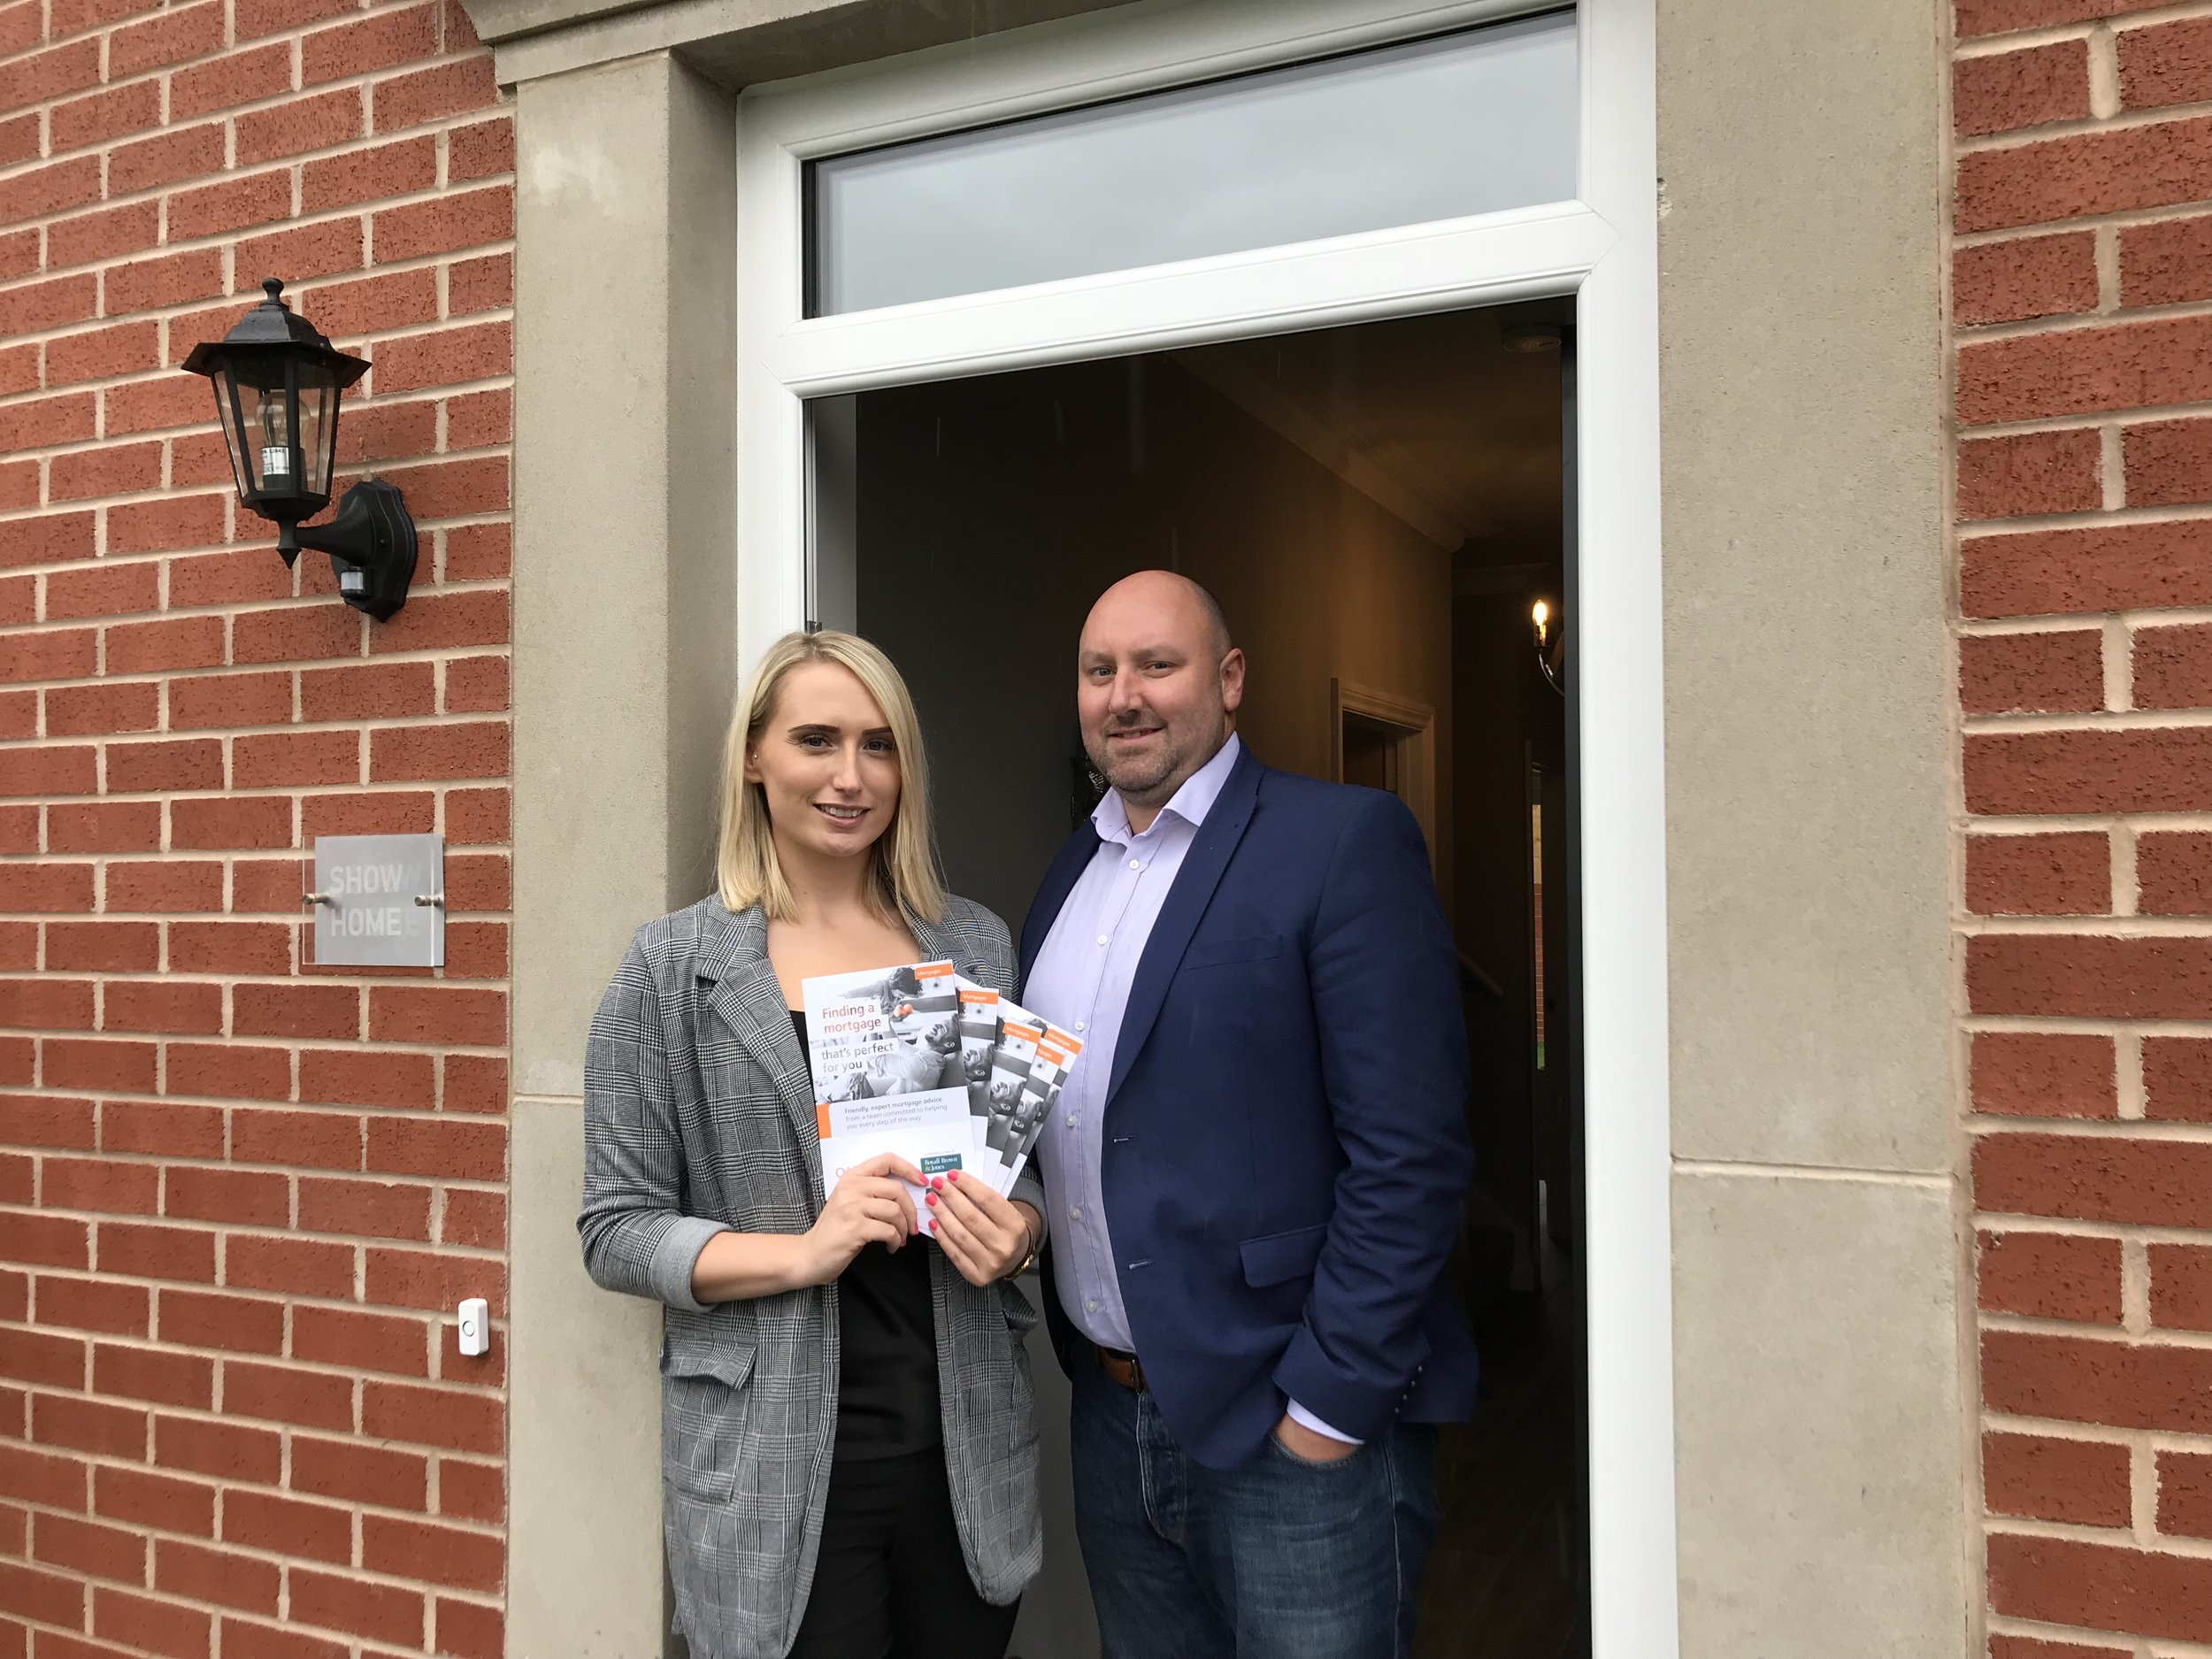 Ginnis New Homes have worked with award-winning financial experts at Oviso to come up with a special package for downsizers. Penguin PR: public relations, media and communications